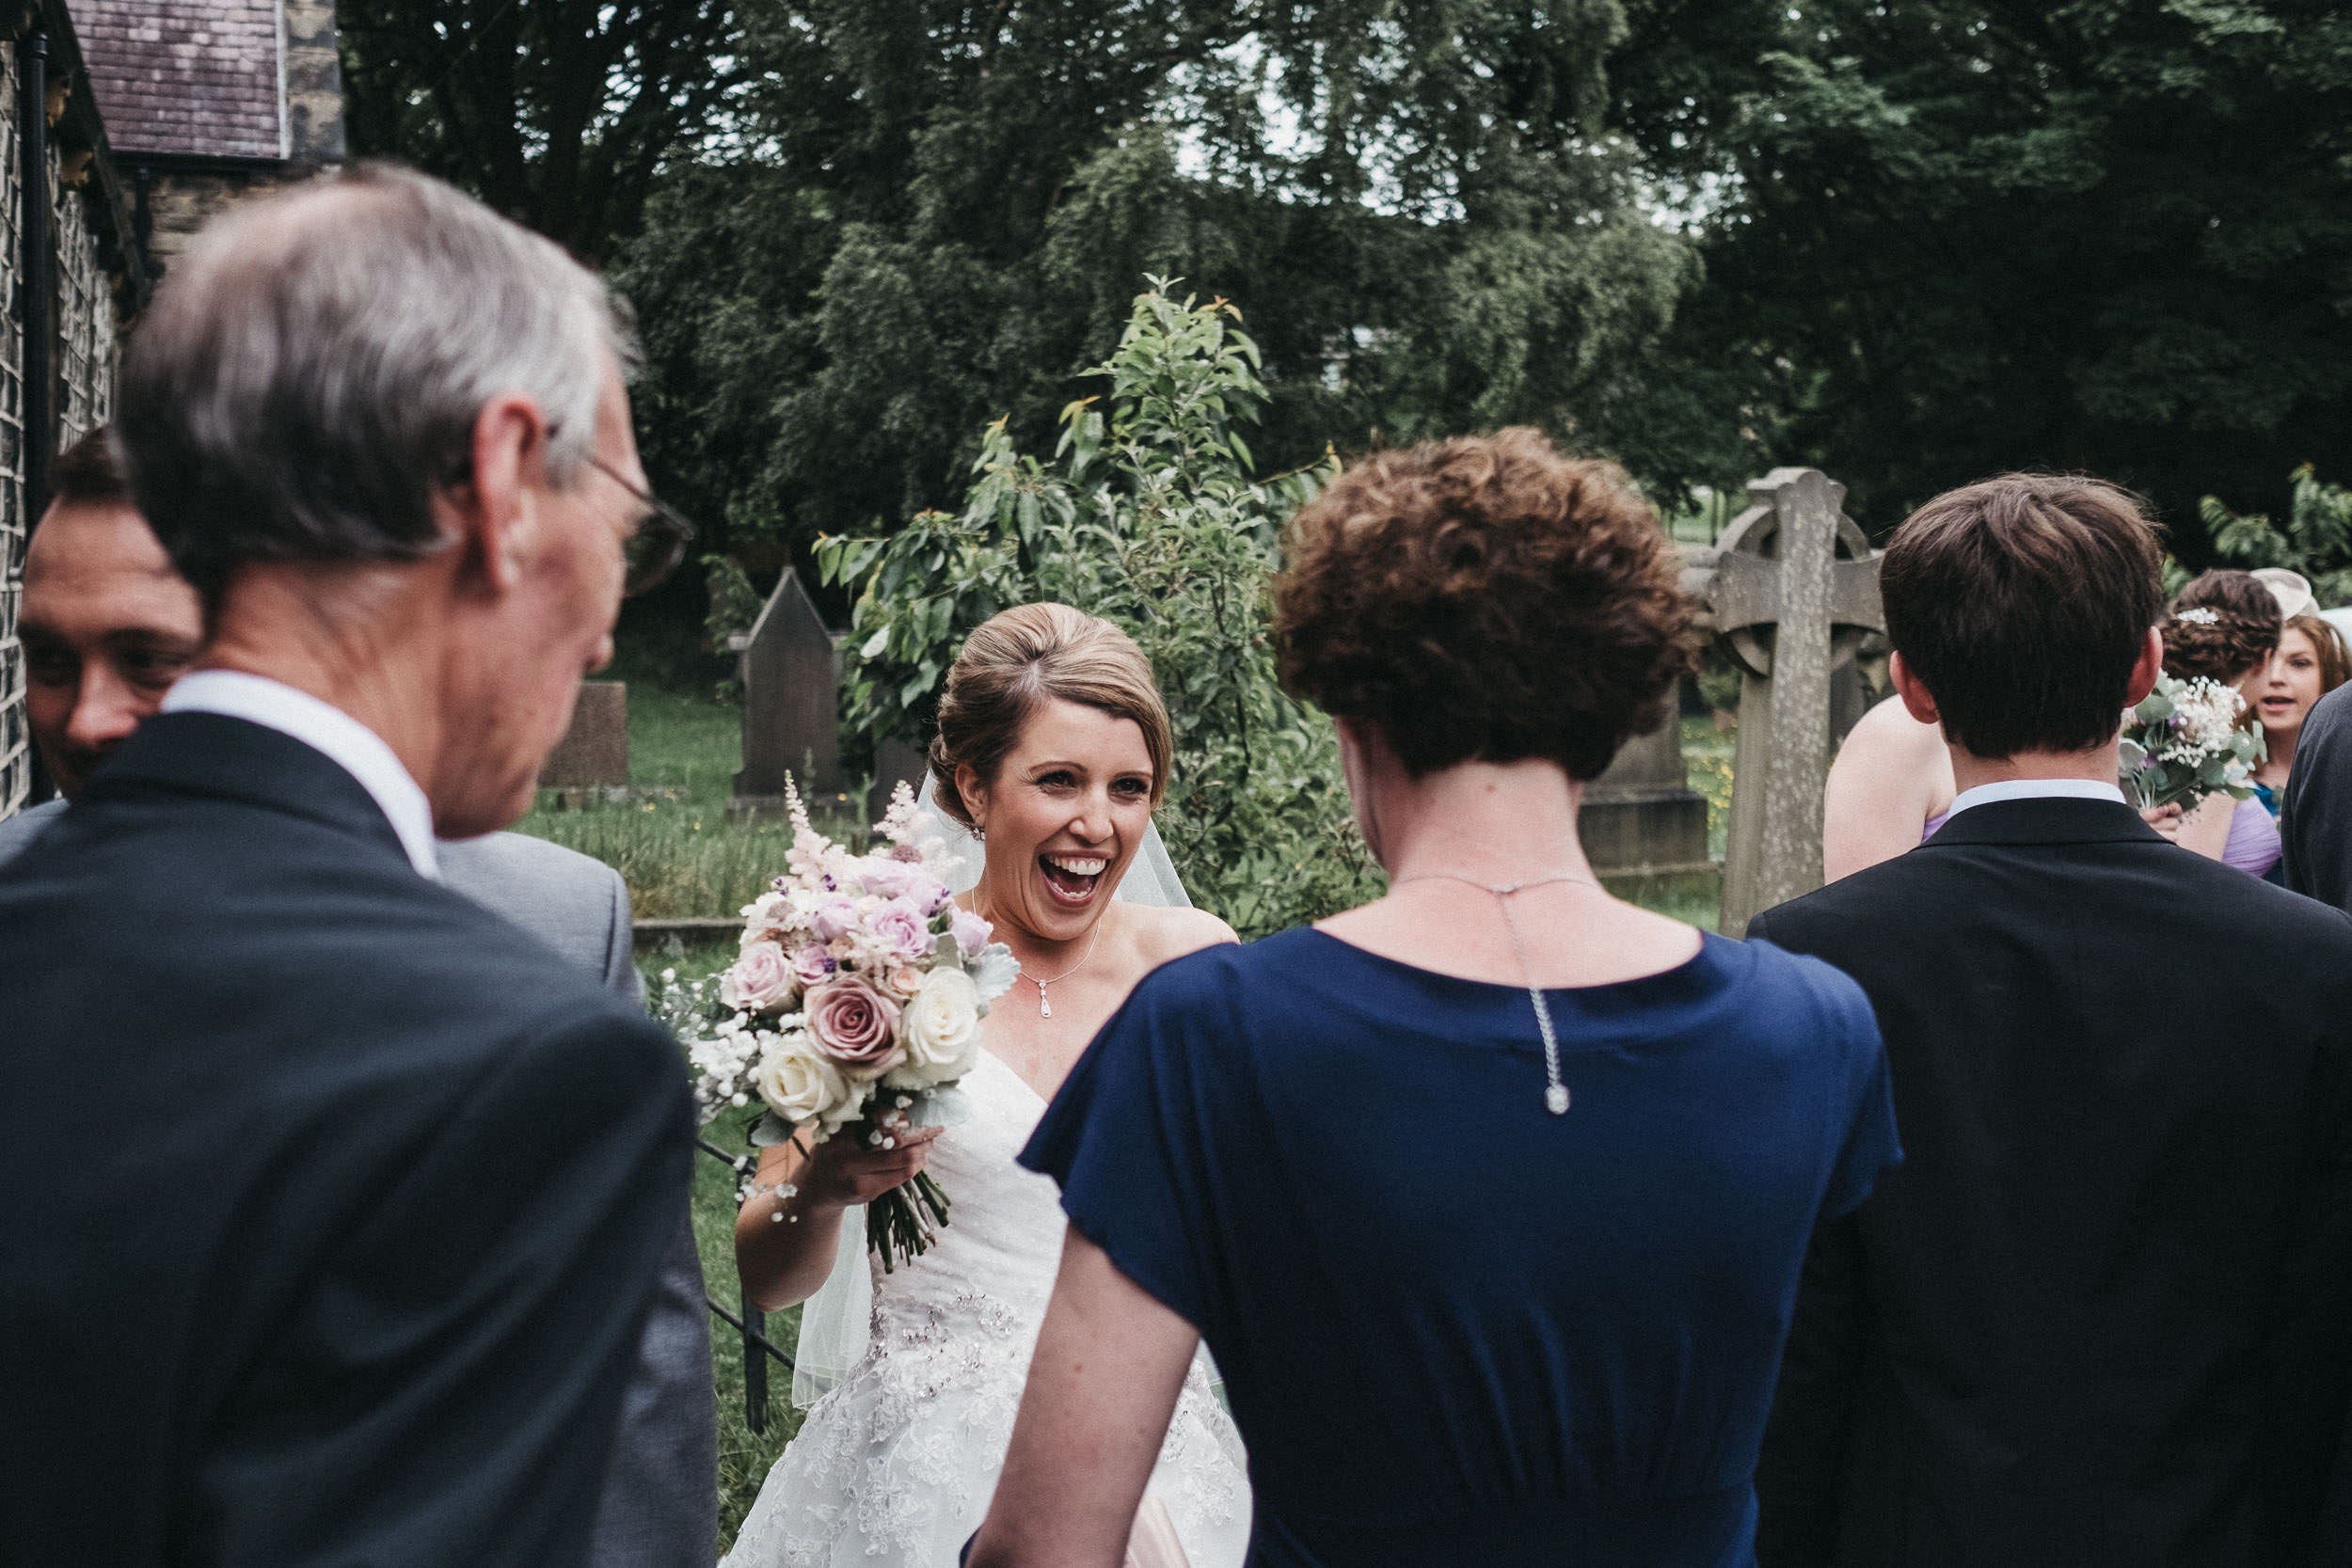 Bride laughing as she greets guests after ceremony